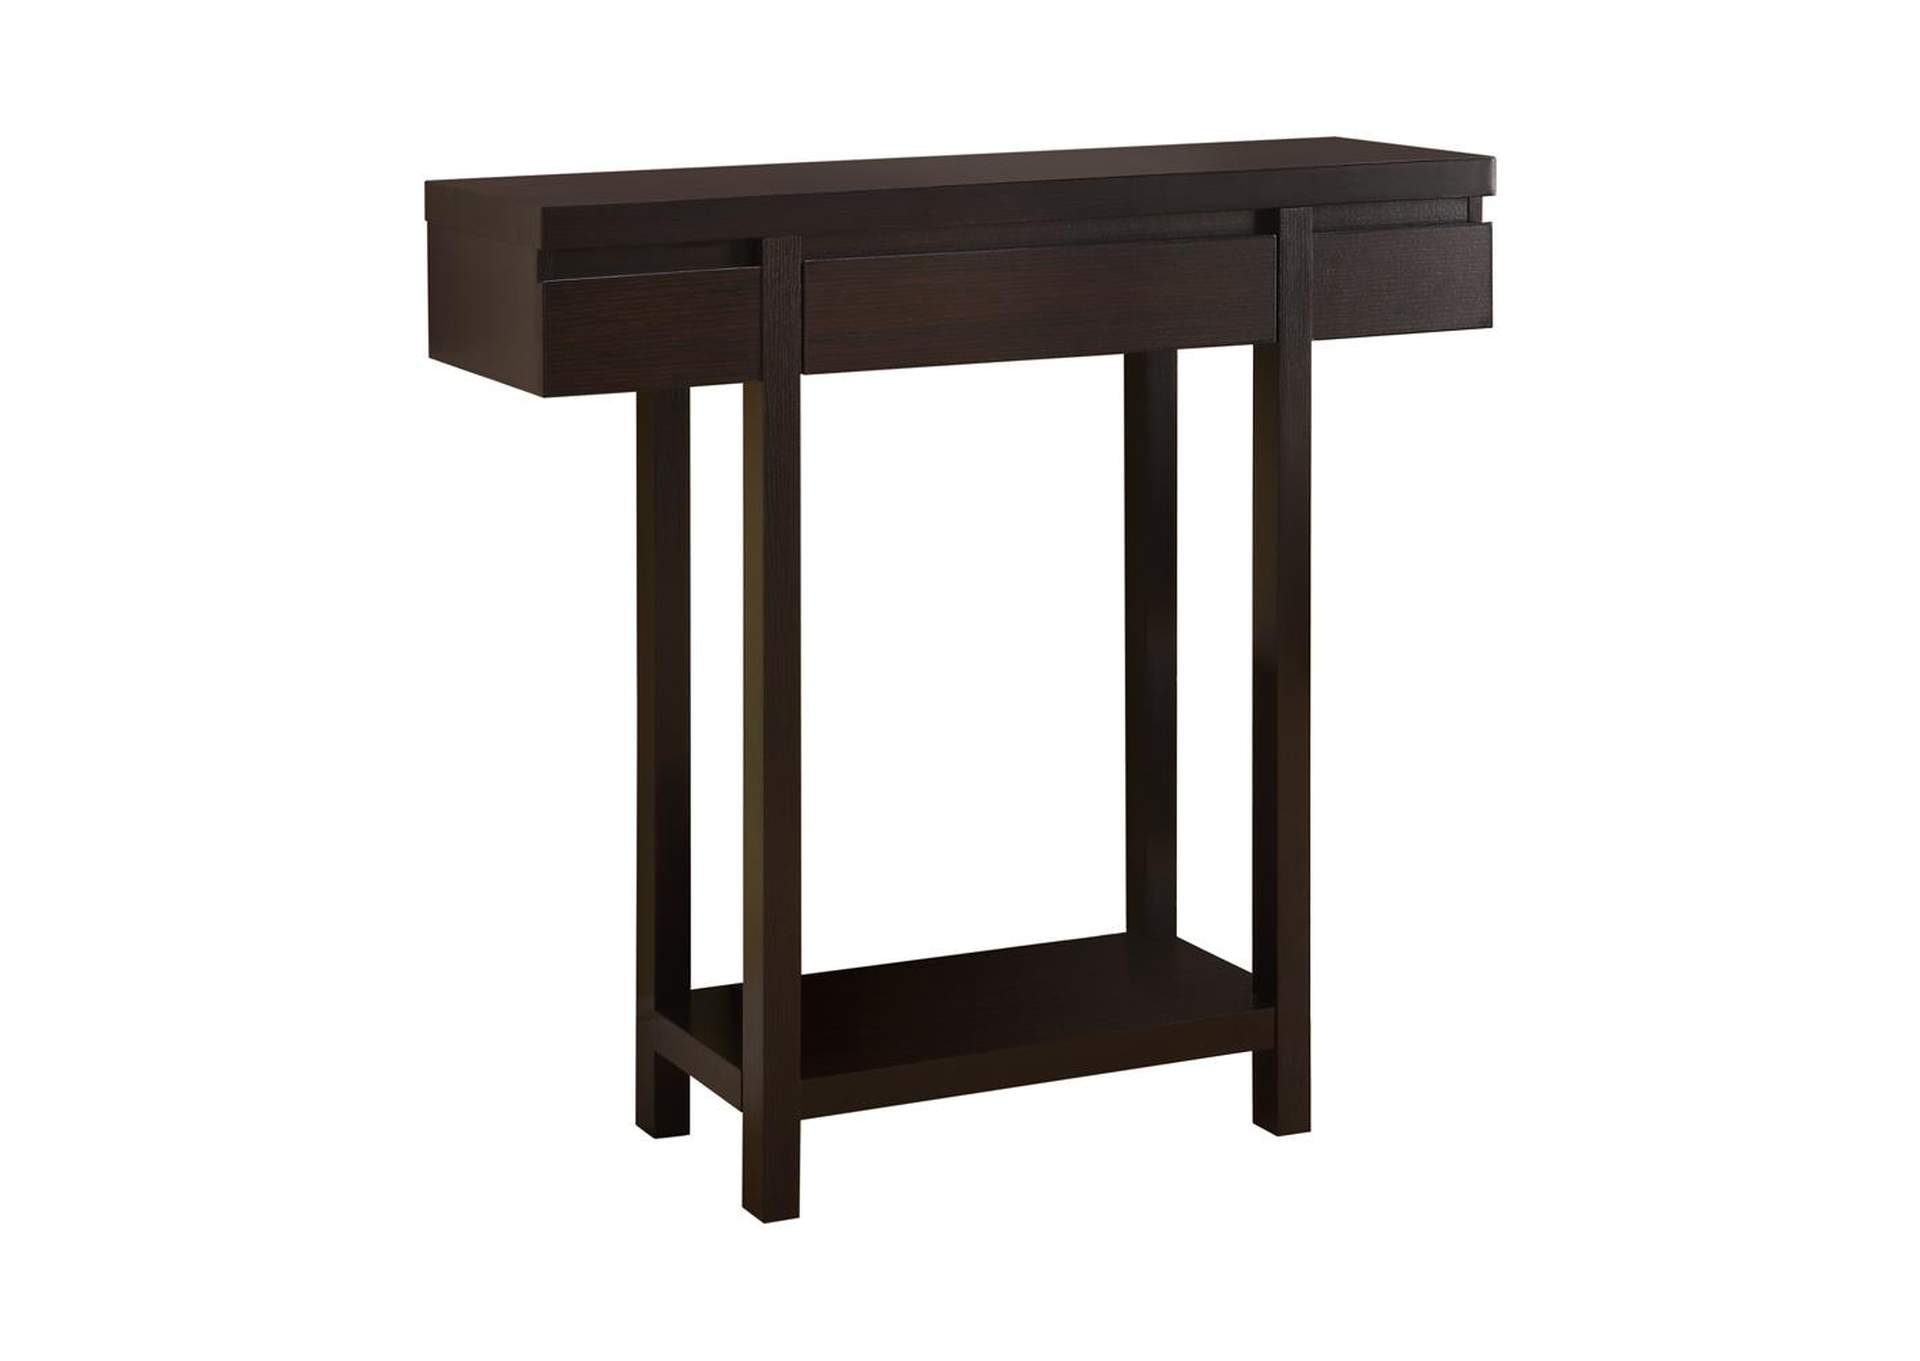 Cappuccino Contemporary Cappuccino Console Table,Coaster Furniture